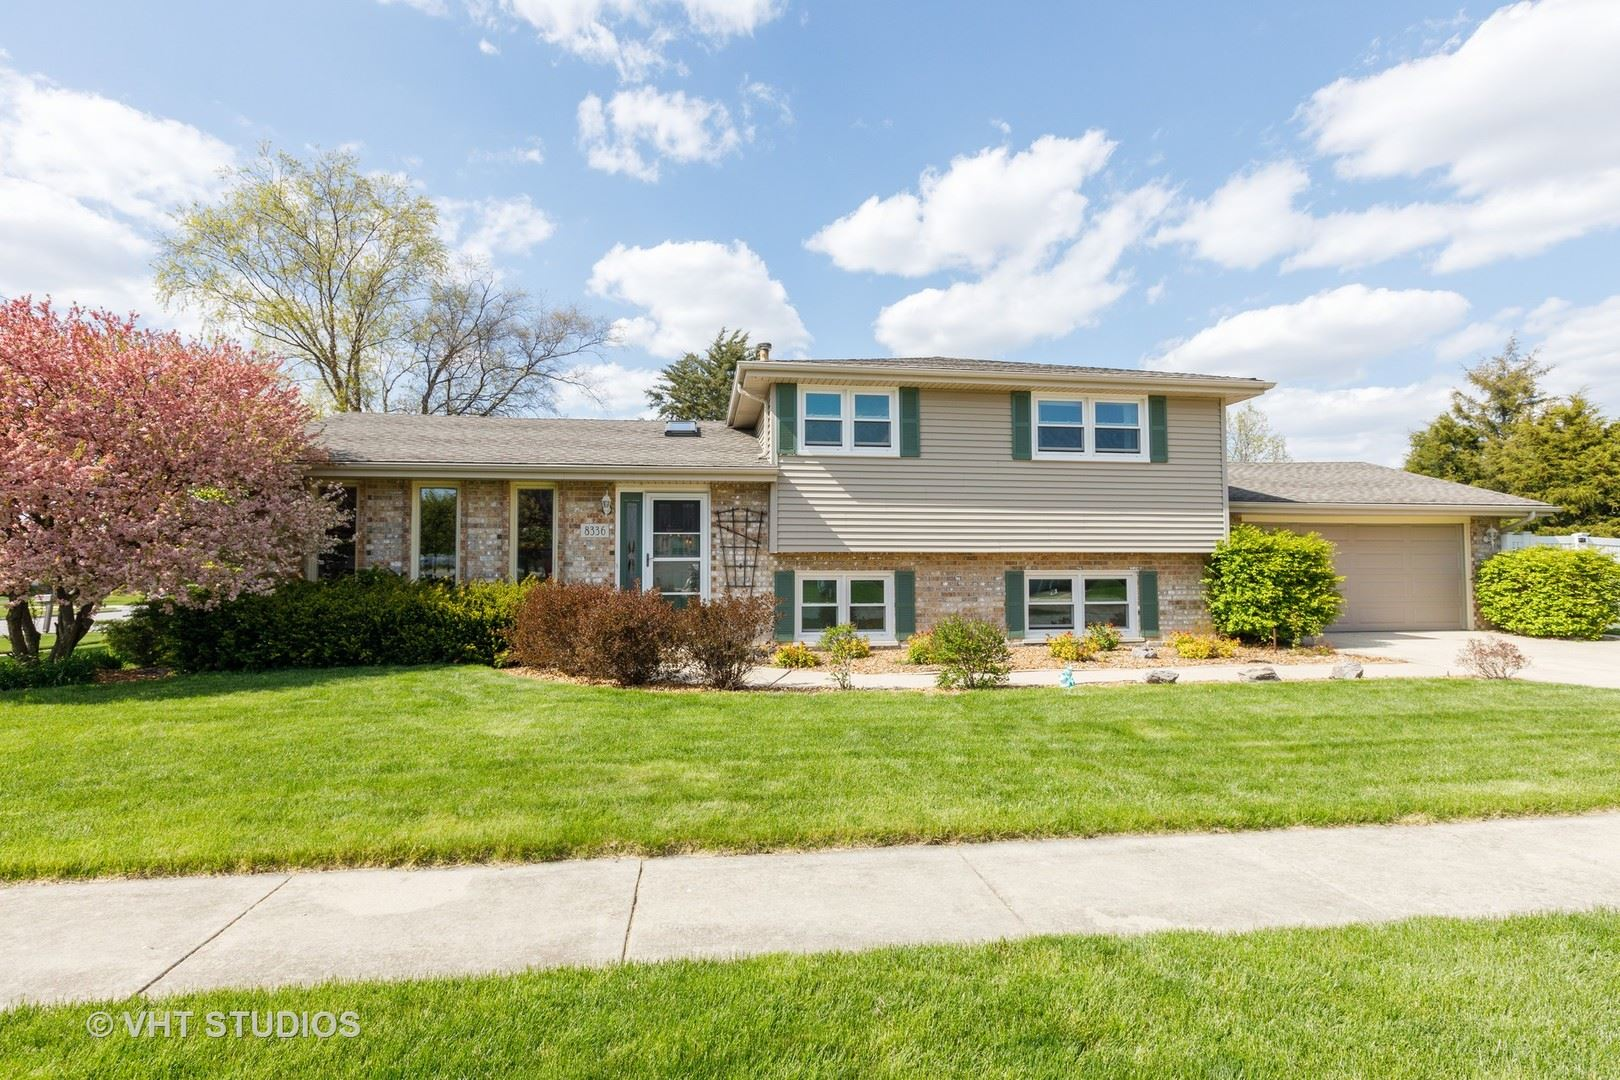 8336 Waterford Drive, Tinley Park, IL 60477 - #: 10714298